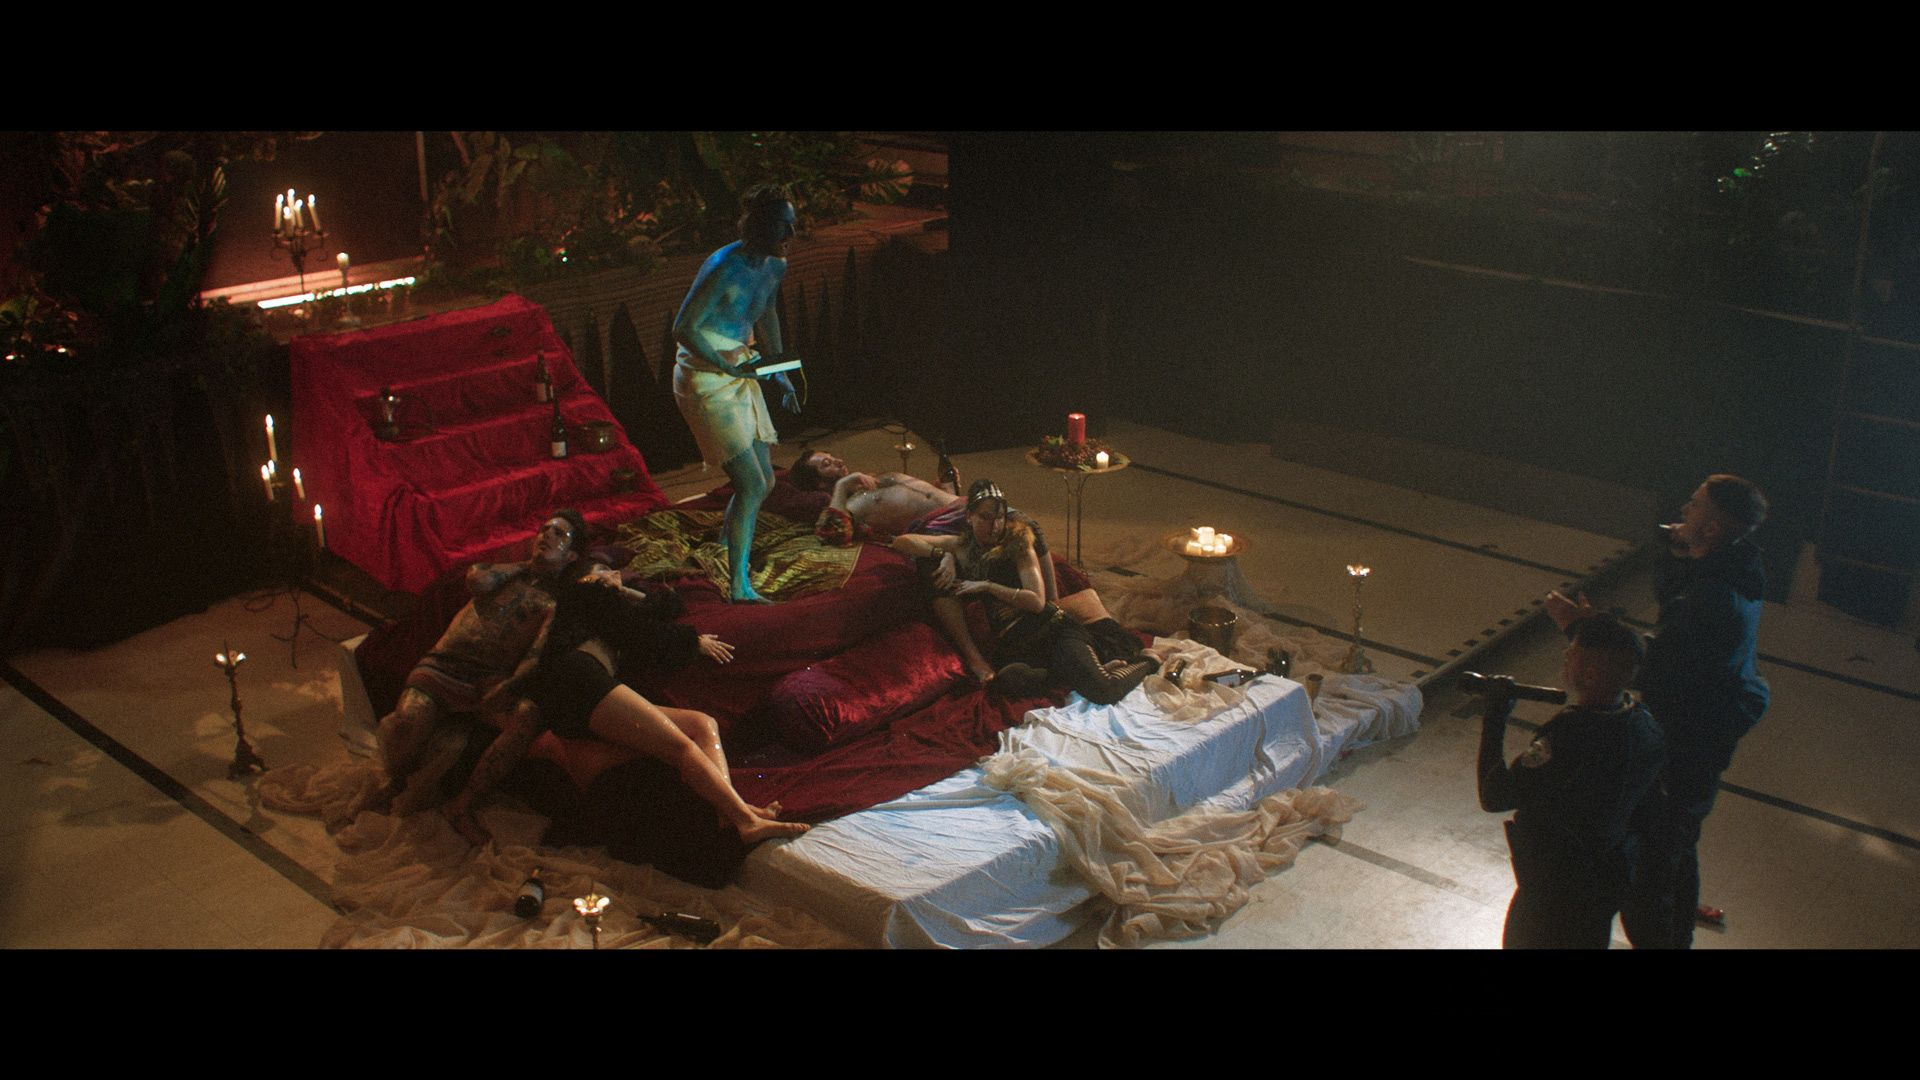 actor completely painted in blue from head to toe playing a guru standing on stage-bed surrounded by people laying blissfully at his feet while guru screams at police officers played by Hugolin Chevrette-Landesque and Emile Schneider for TV series La Loi C'est La Loi filmed by Les Gamins for TV5 Unis